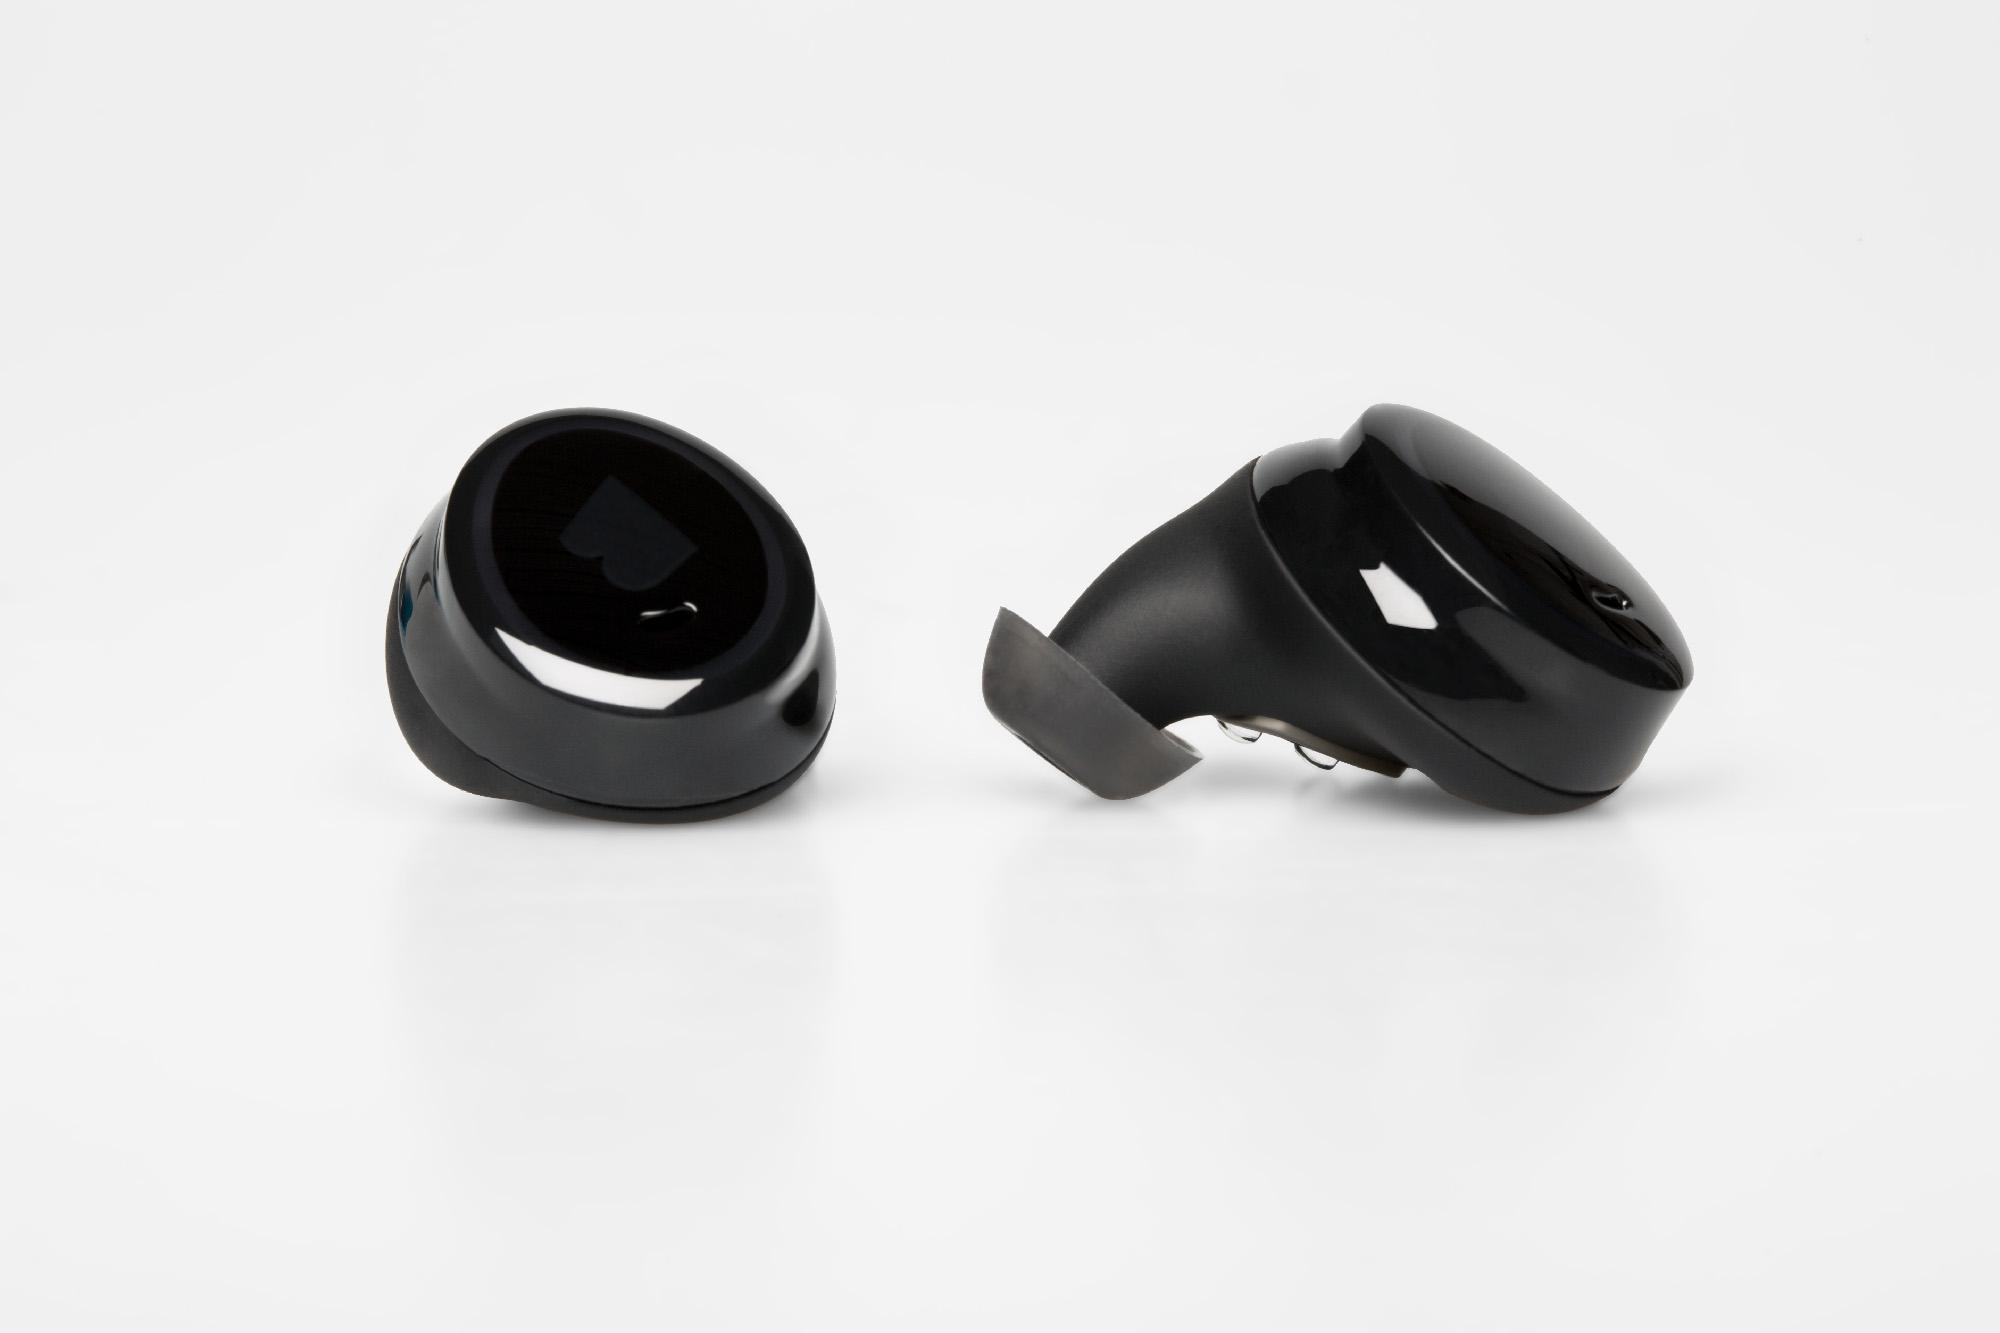 Compare Bragi The Dash Pro Black Prices